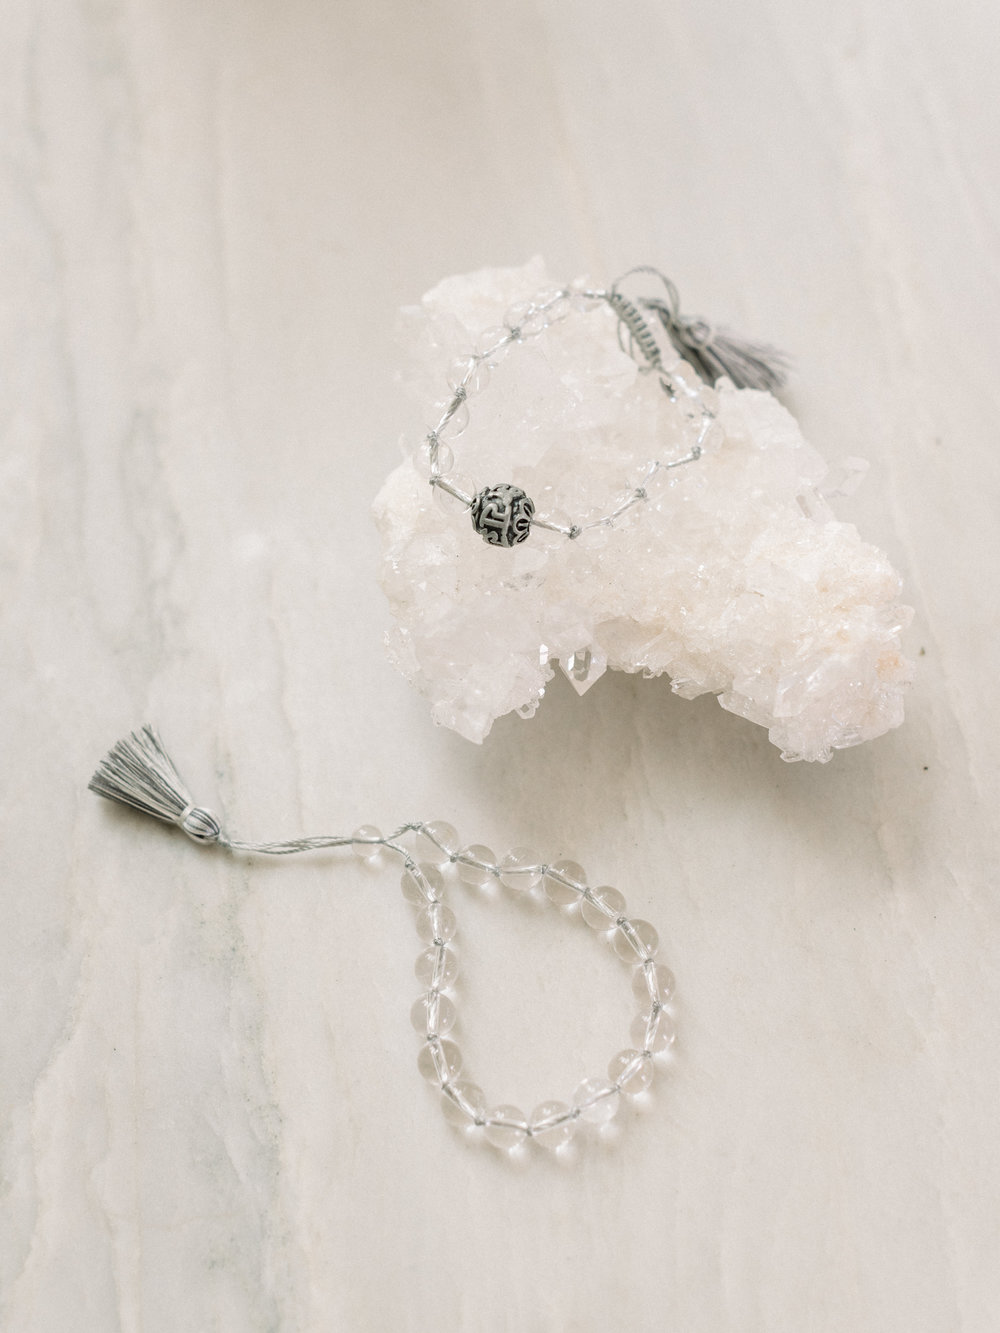 Featuring our  Crystal Quartz Double Tassel Bracelet  +  Crystal Quartz Mini Tassel Bracelet .